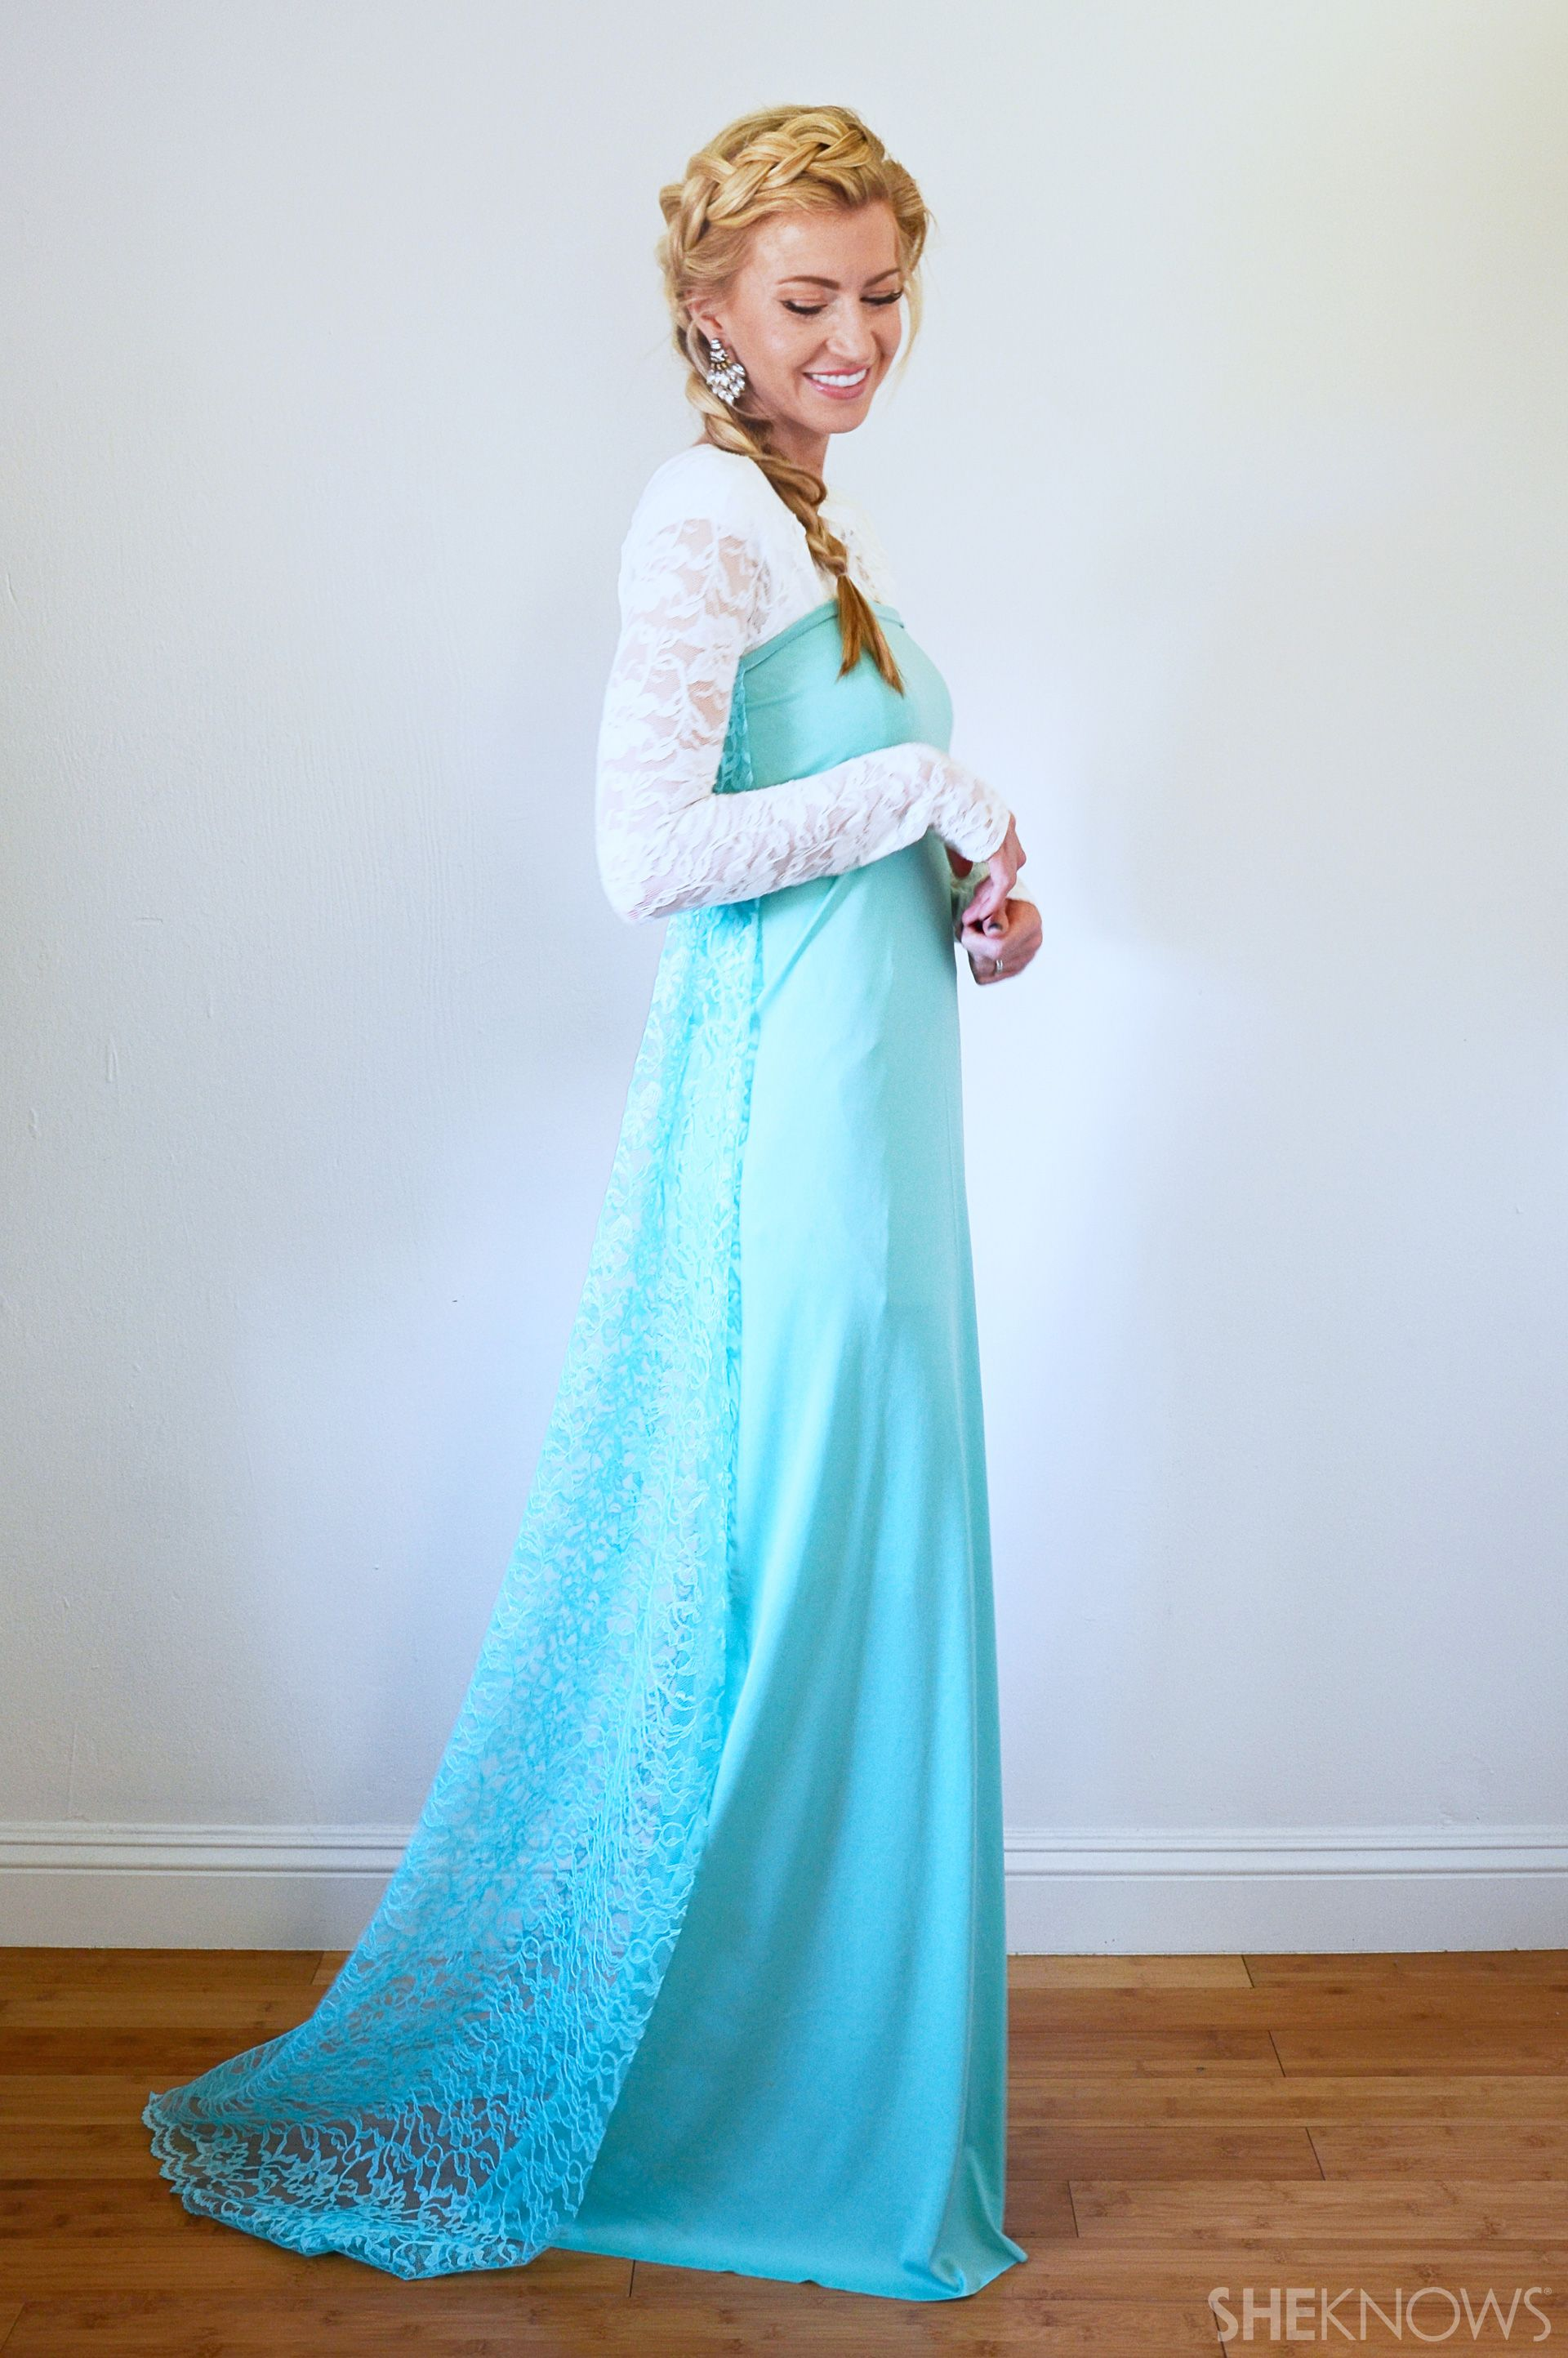 3 Easy Diy Disney Princess Costumes  Because Youre -2531